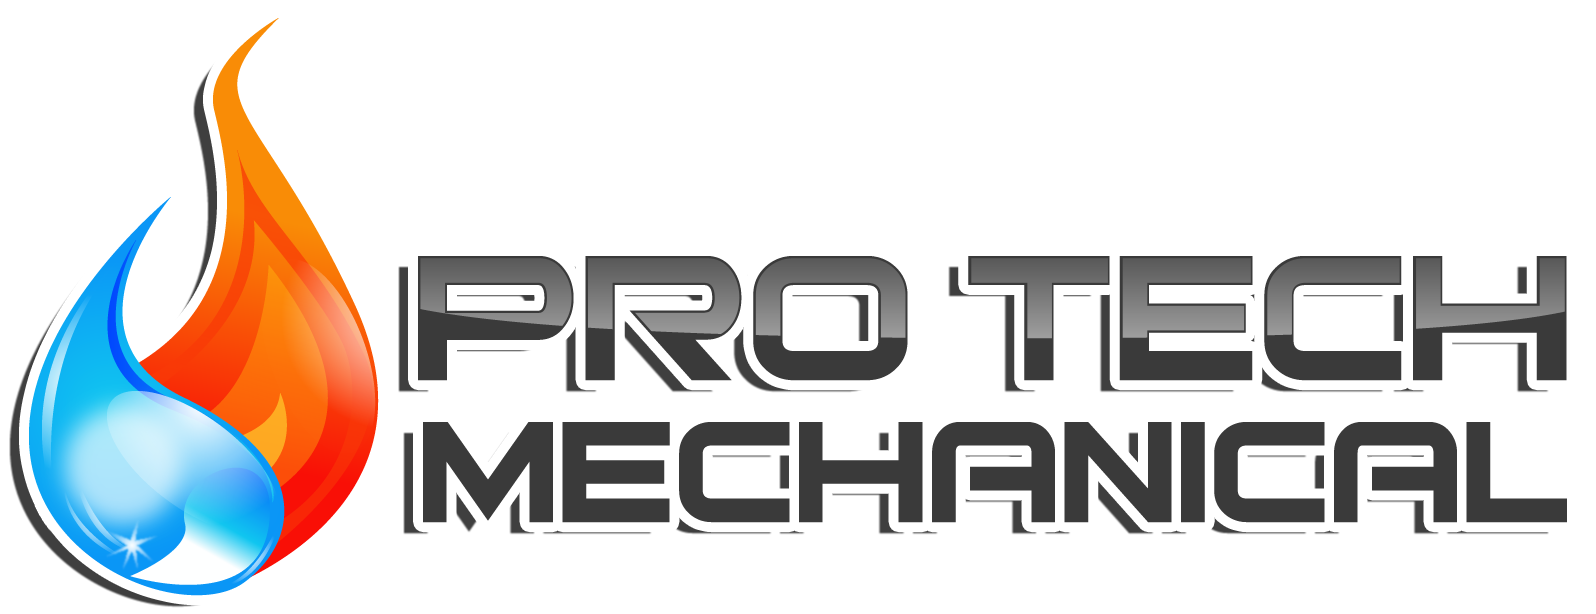 Pro-Tech Mechanical